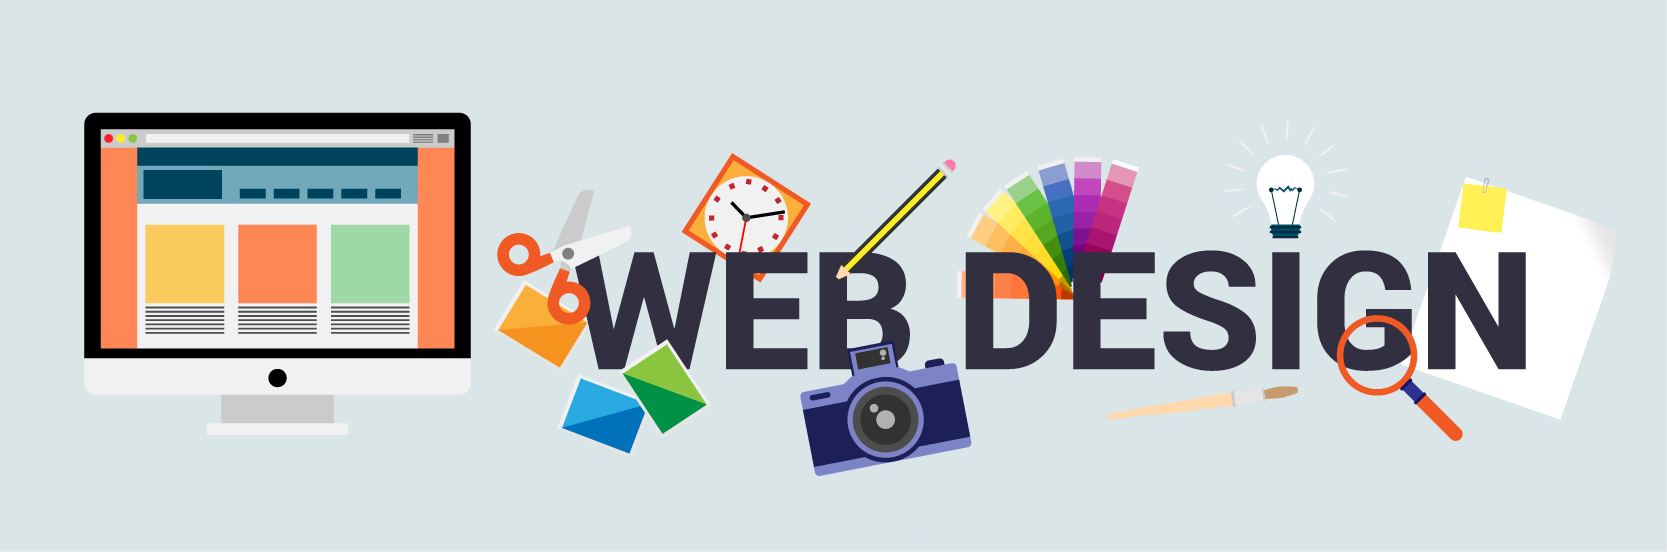 denver web design